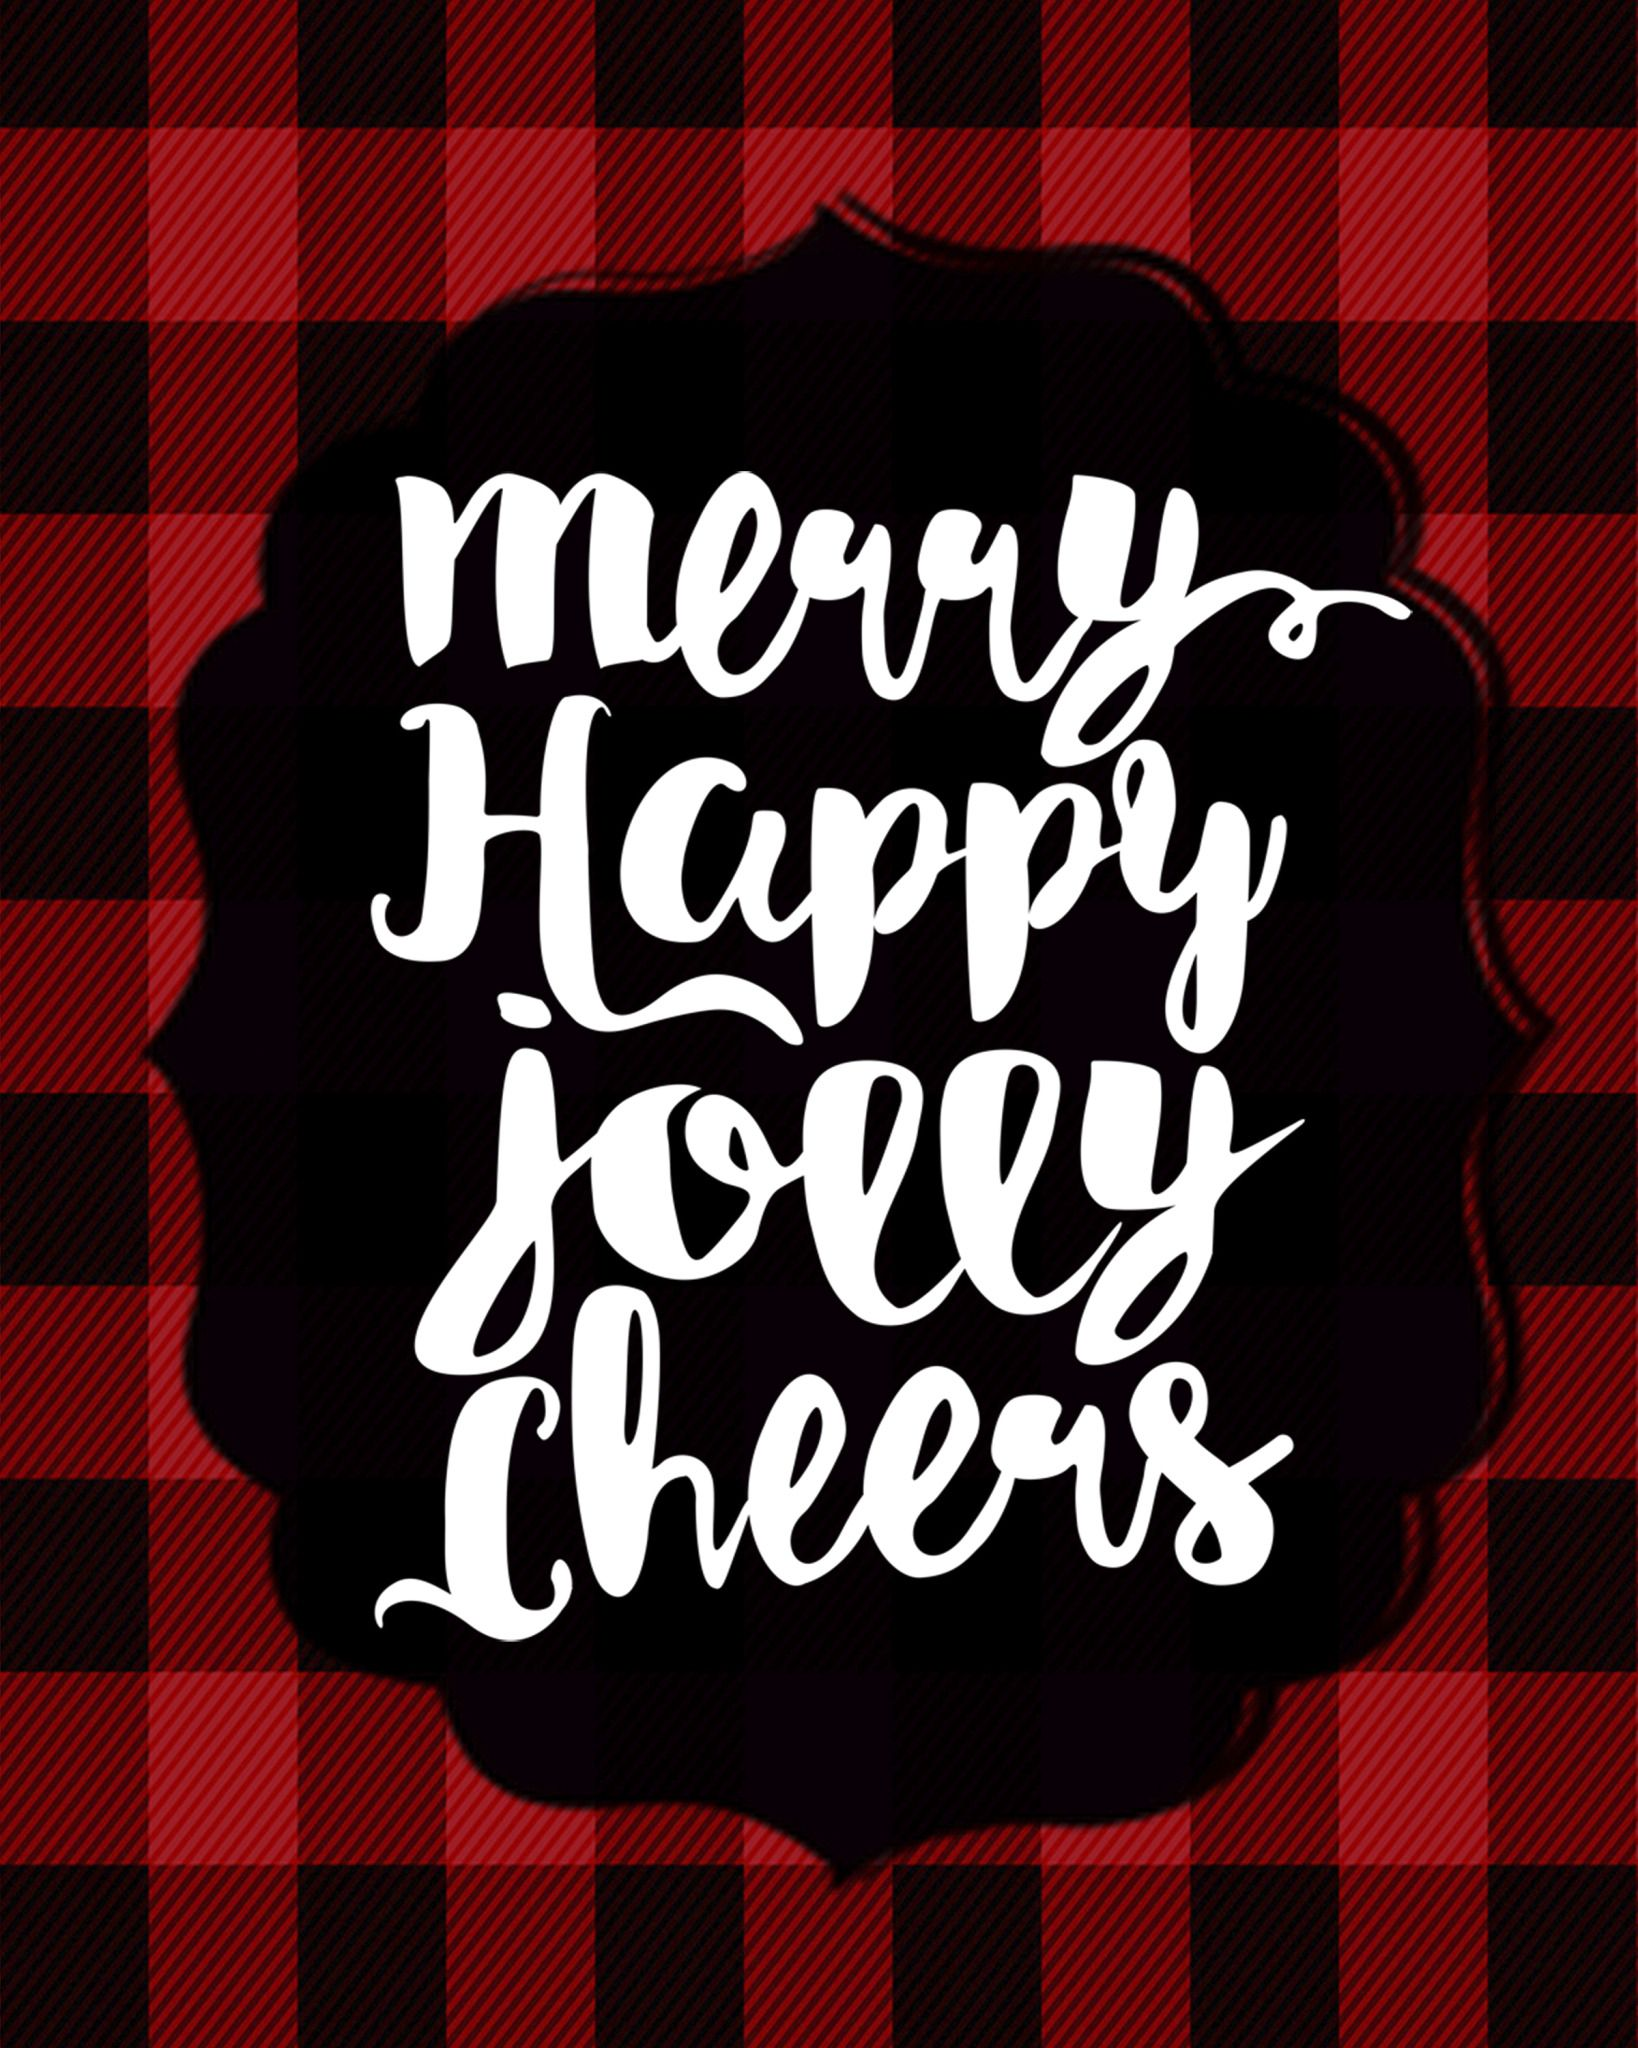 Happy Merry 8x10 Plaid.jpg - File Shared from Box